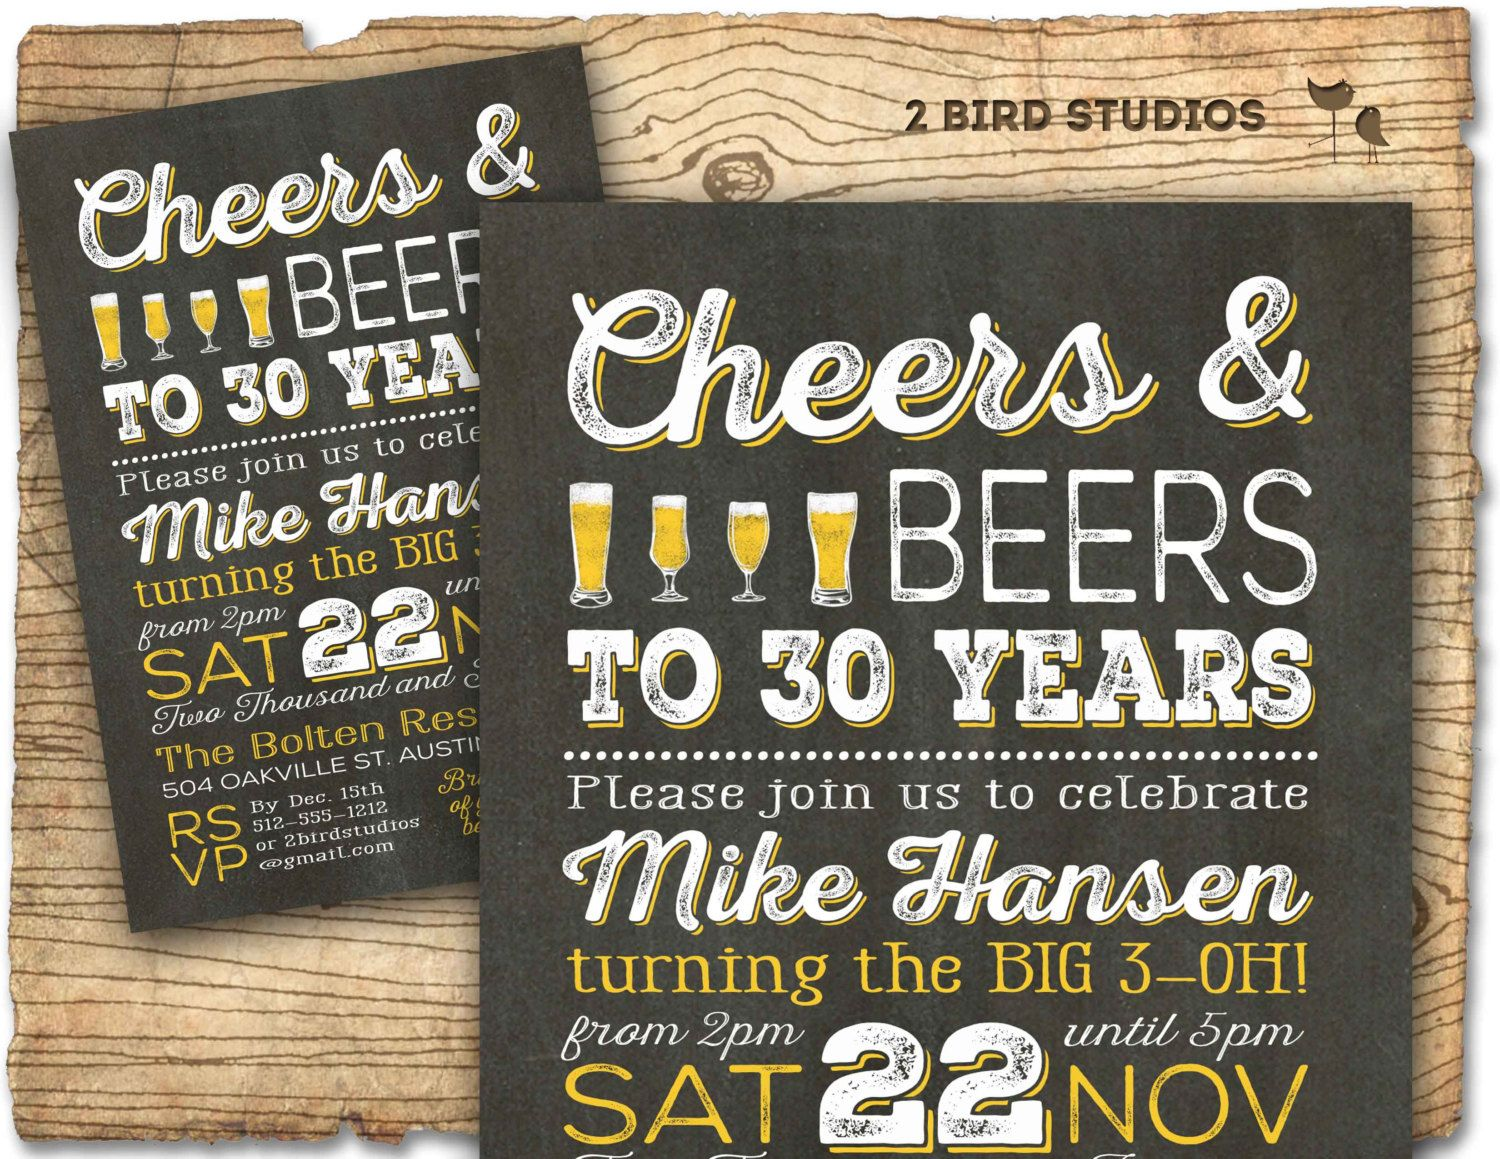 Cheers and beers to 30 years invitation 30th birthday invitation cheers and beers to 30 years invitation 30th birthday invitation for men 30th beer invitation surprise party chalkboard u print stopboris Images